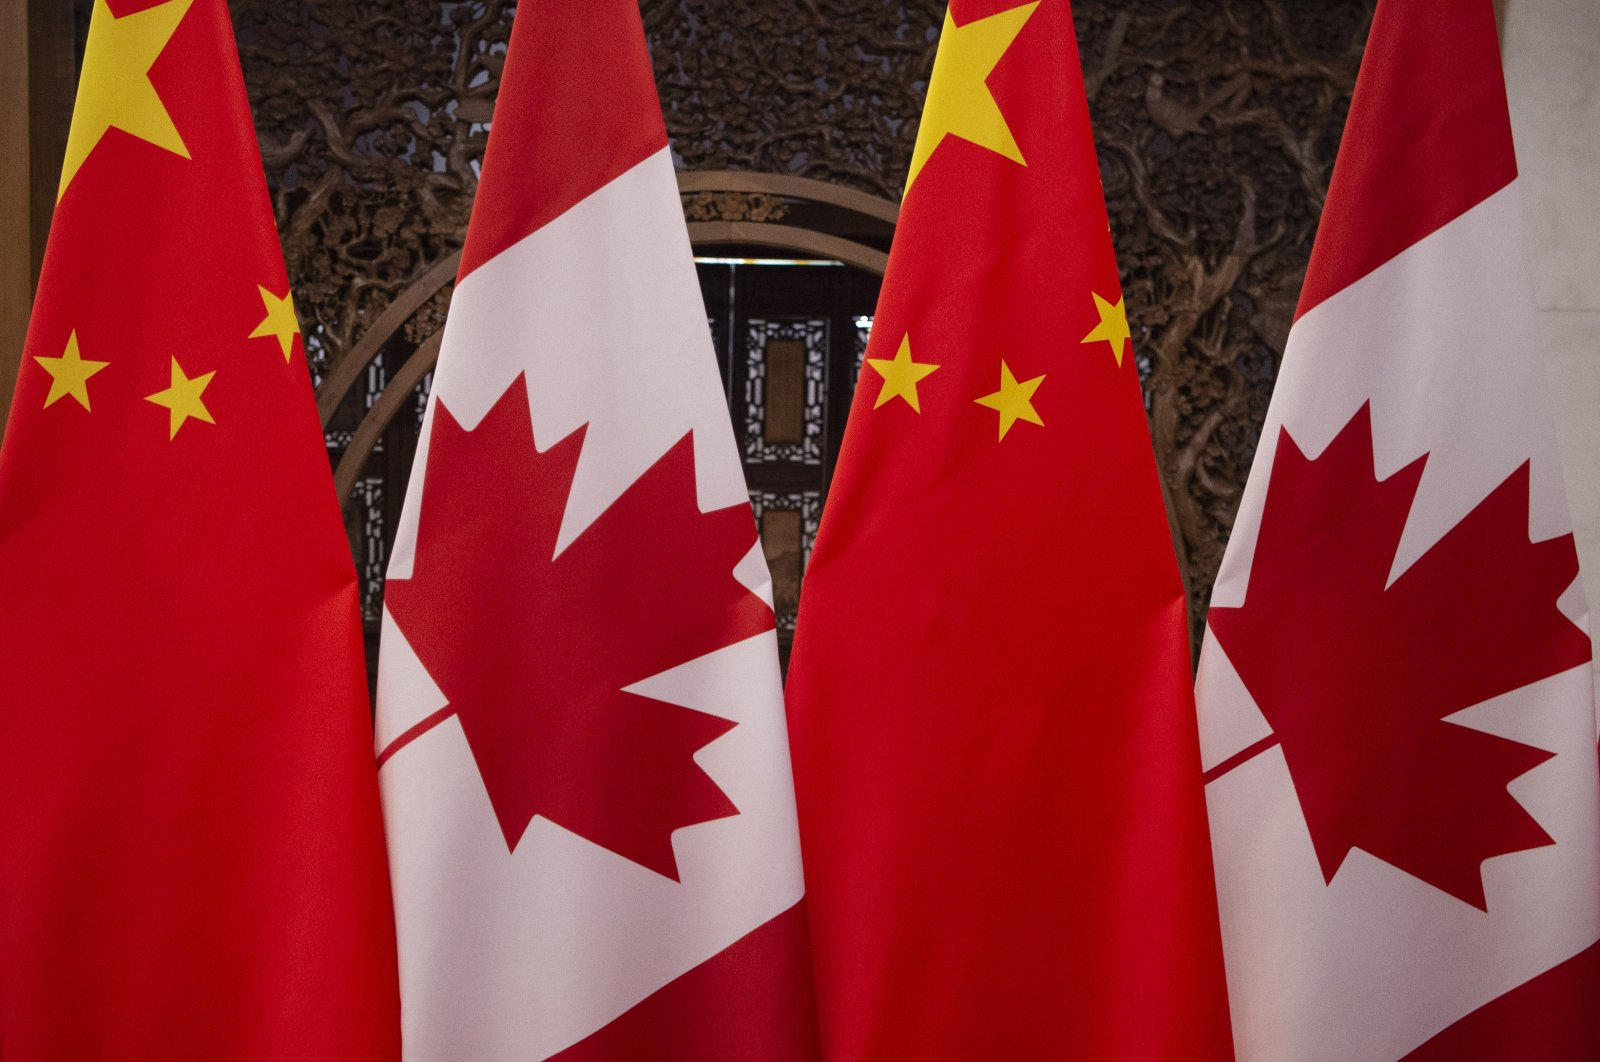 Canadian and Chinese flags are seen prior to a meeting with Canada's Prime Minister Justin Trudeau and China's President Xi Jinping at the Diaoyutai State Guesthouse in Beijing, China, Dec. 5, 2017. (AFP Photo)